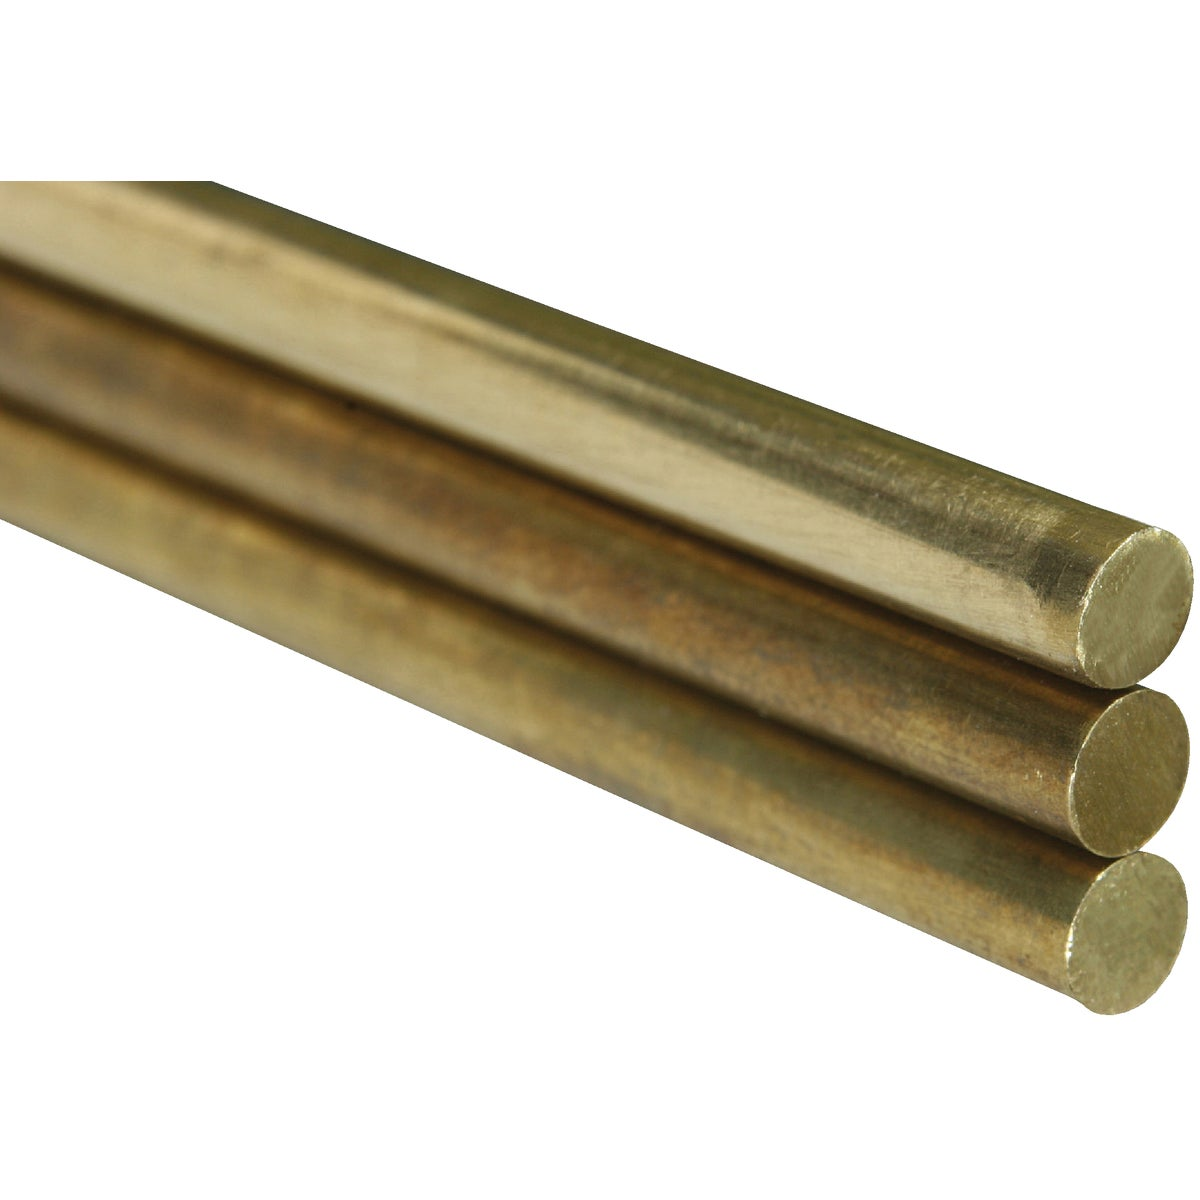 3/32X12 SOLID BRASS ROD - 8163 by K&s Precision Metals